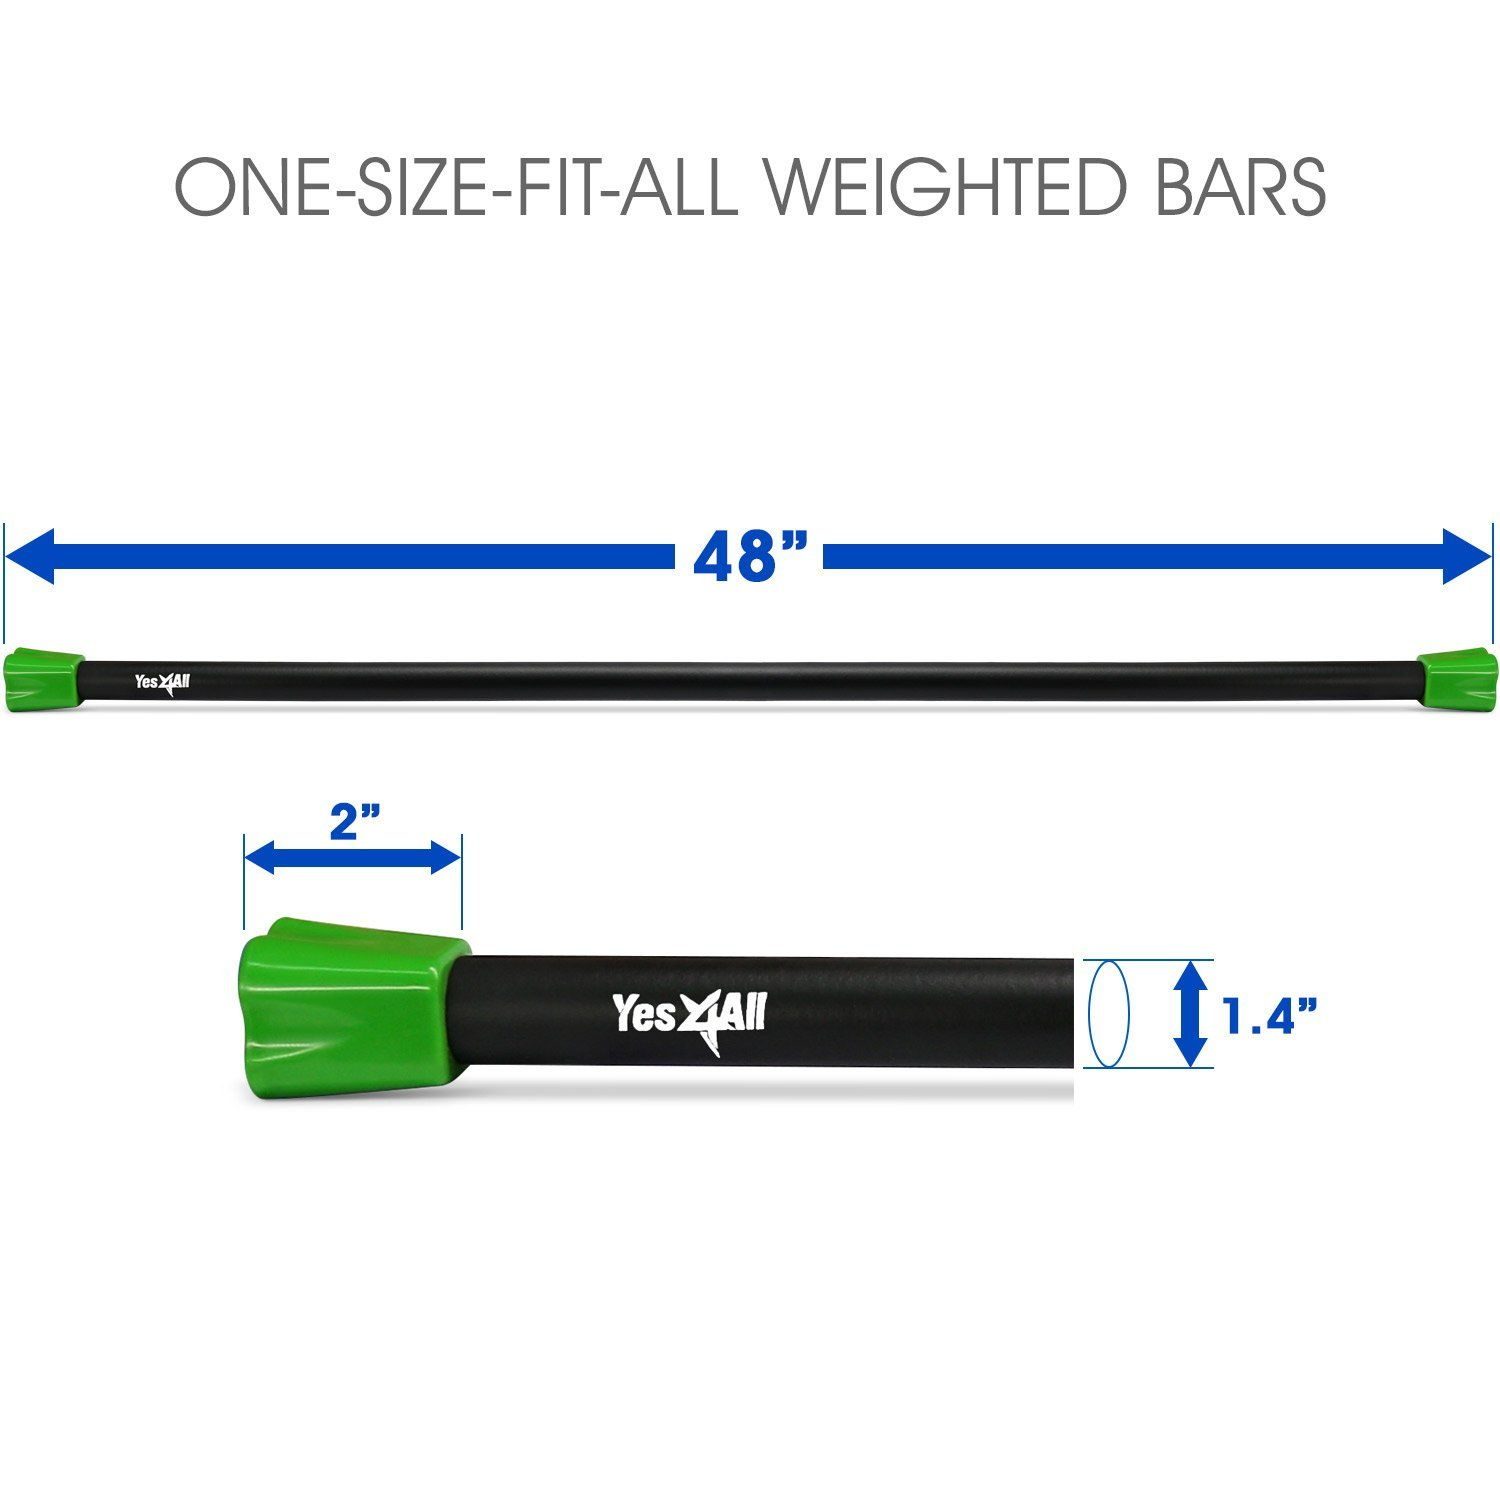 Yes4All Total Body Workout Weighted Bar / Weighted Workout Bar – Great for Physical Therapy, Aerobics and Yoga – Weighted Exercise Bar (10 lbs) by Yes4All (Image #2)